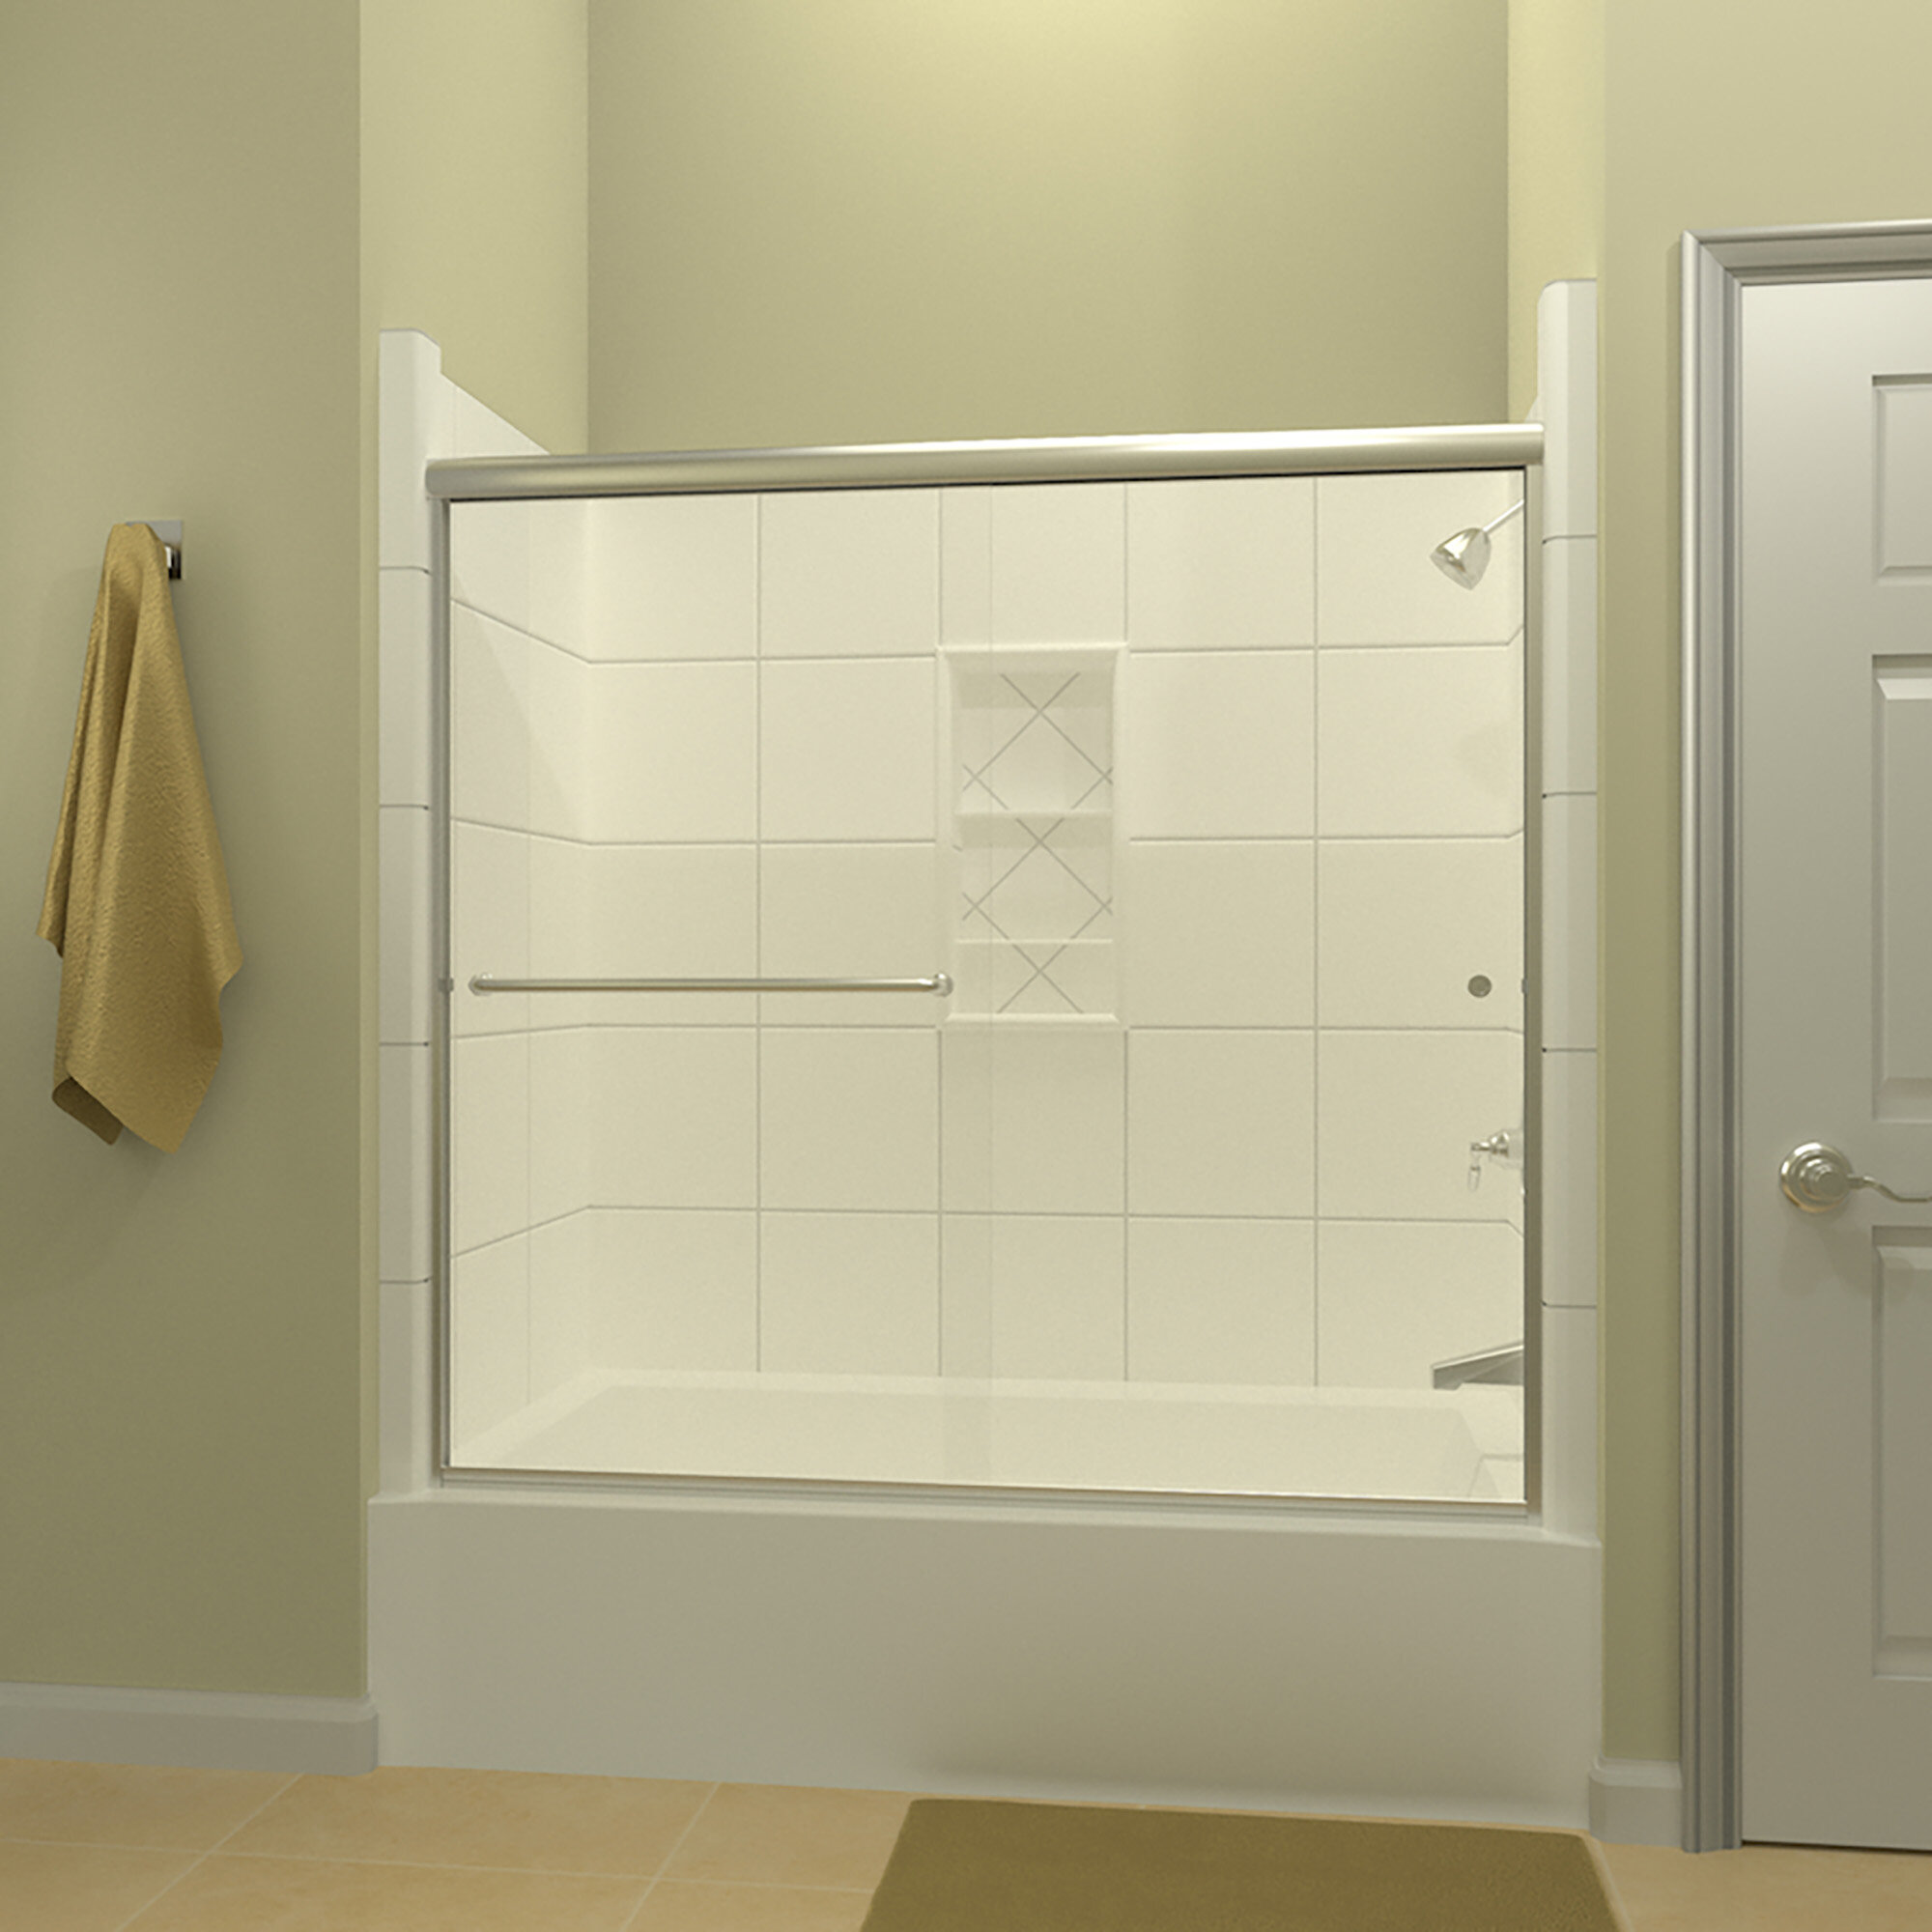 Details About Ete 72 X57 38 Bypass Semi Frameless Tub Door Left Opening Anodized Oil Rubbed B